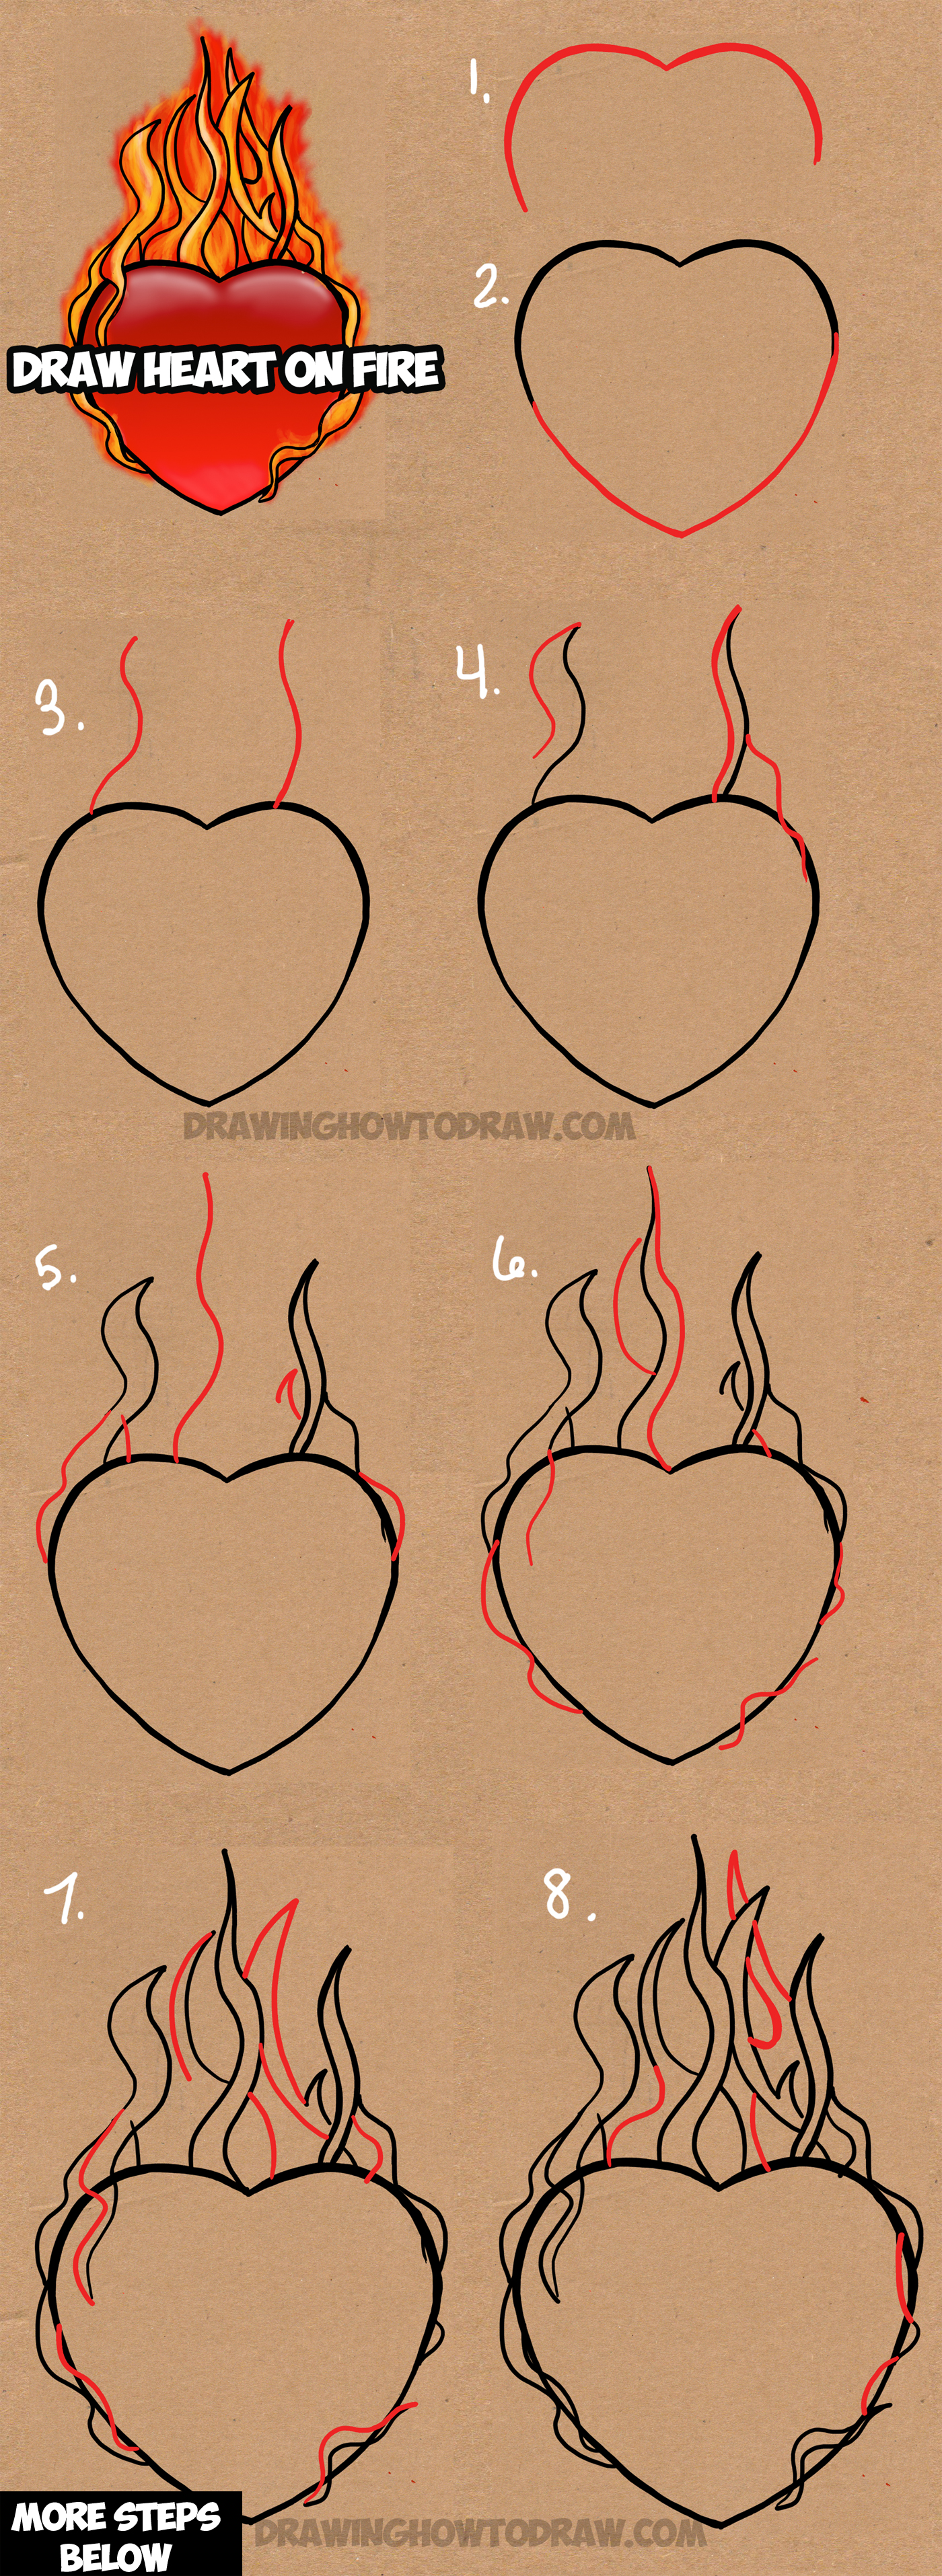 Drawn rose heart on fire Is a Flames Lesson draw